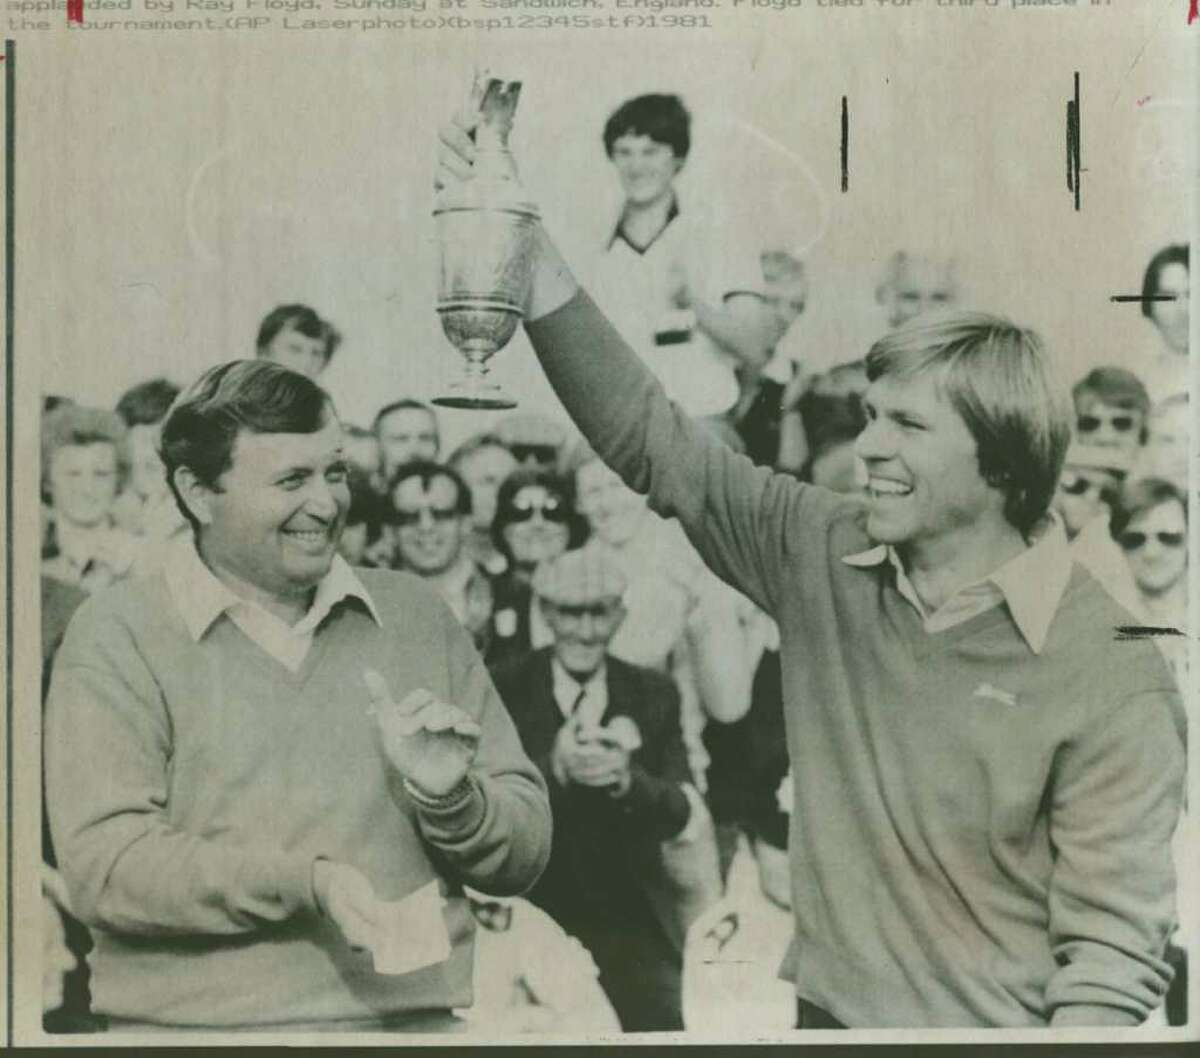 Bill Rogers at the 1981 British Open. Associated Press